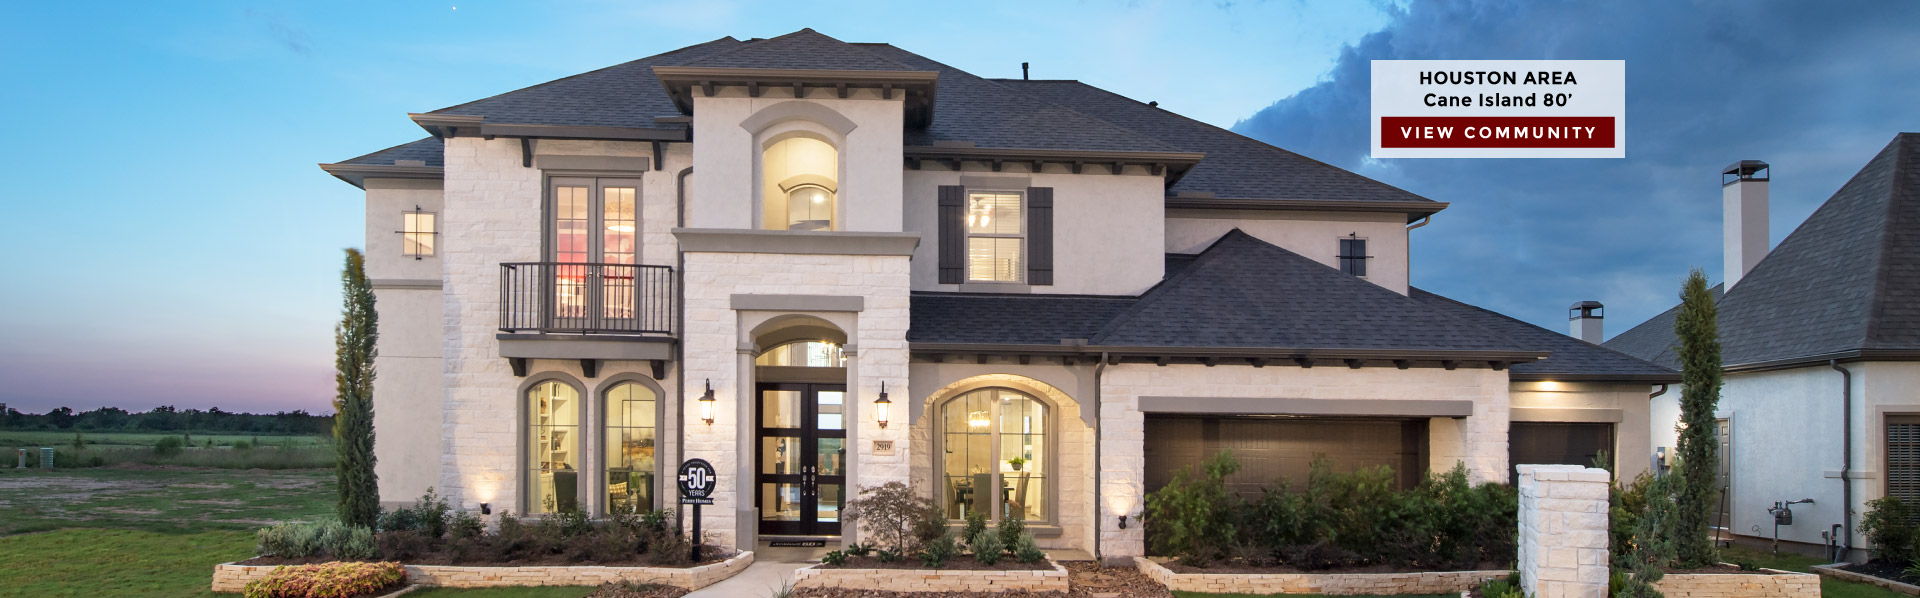 New homebuilders texas new home builder perry homes - Perry homes design center houston ...